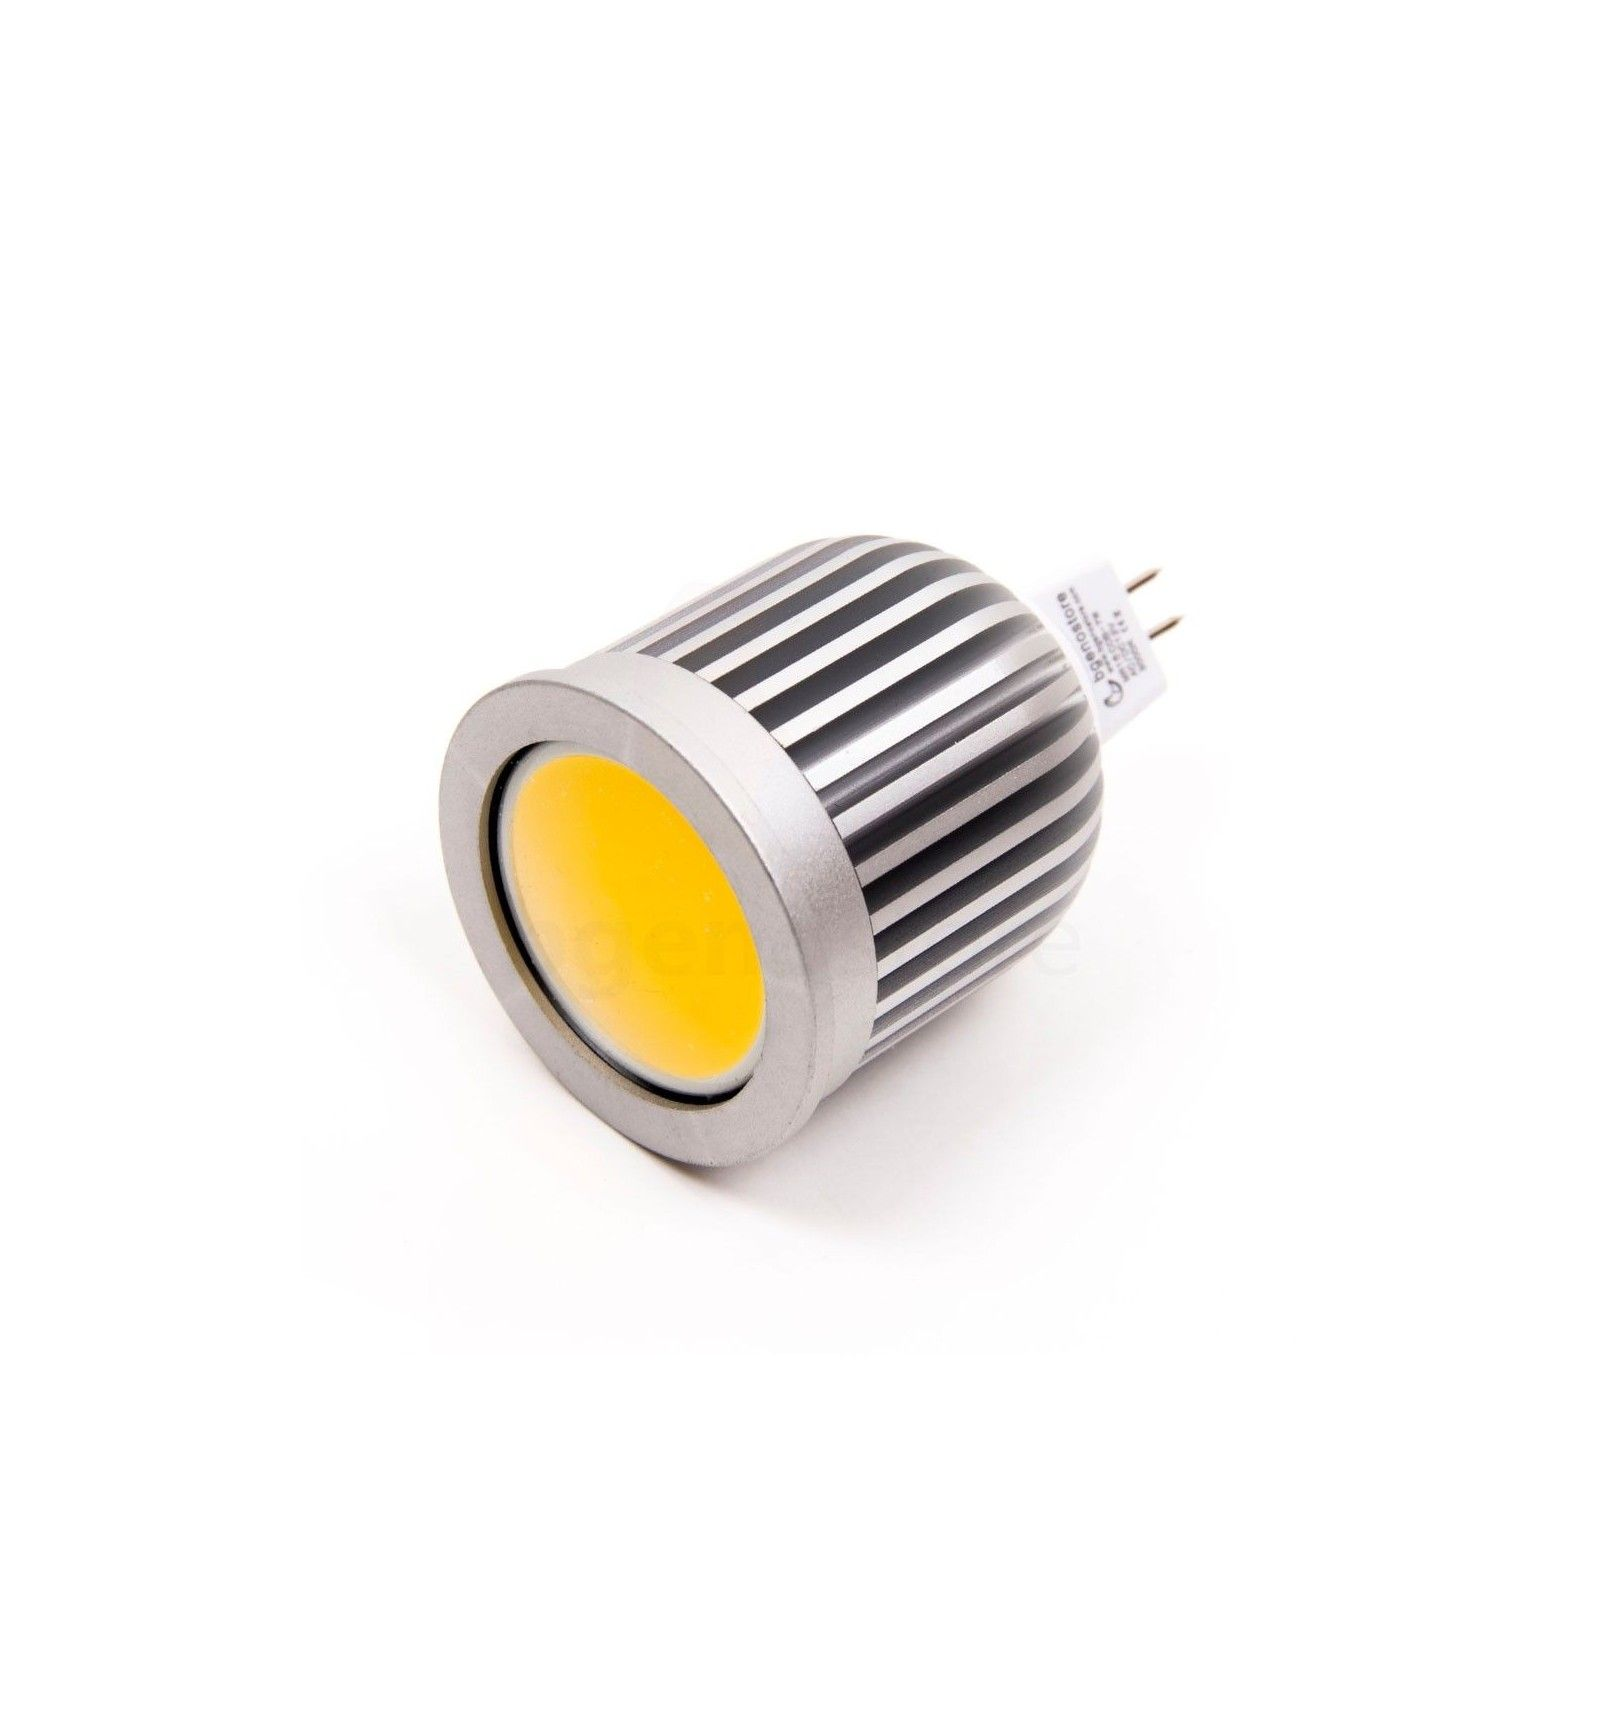 12v Bombilla Led Bombilla Led Mr16 7w Cob Led Bulb 12v